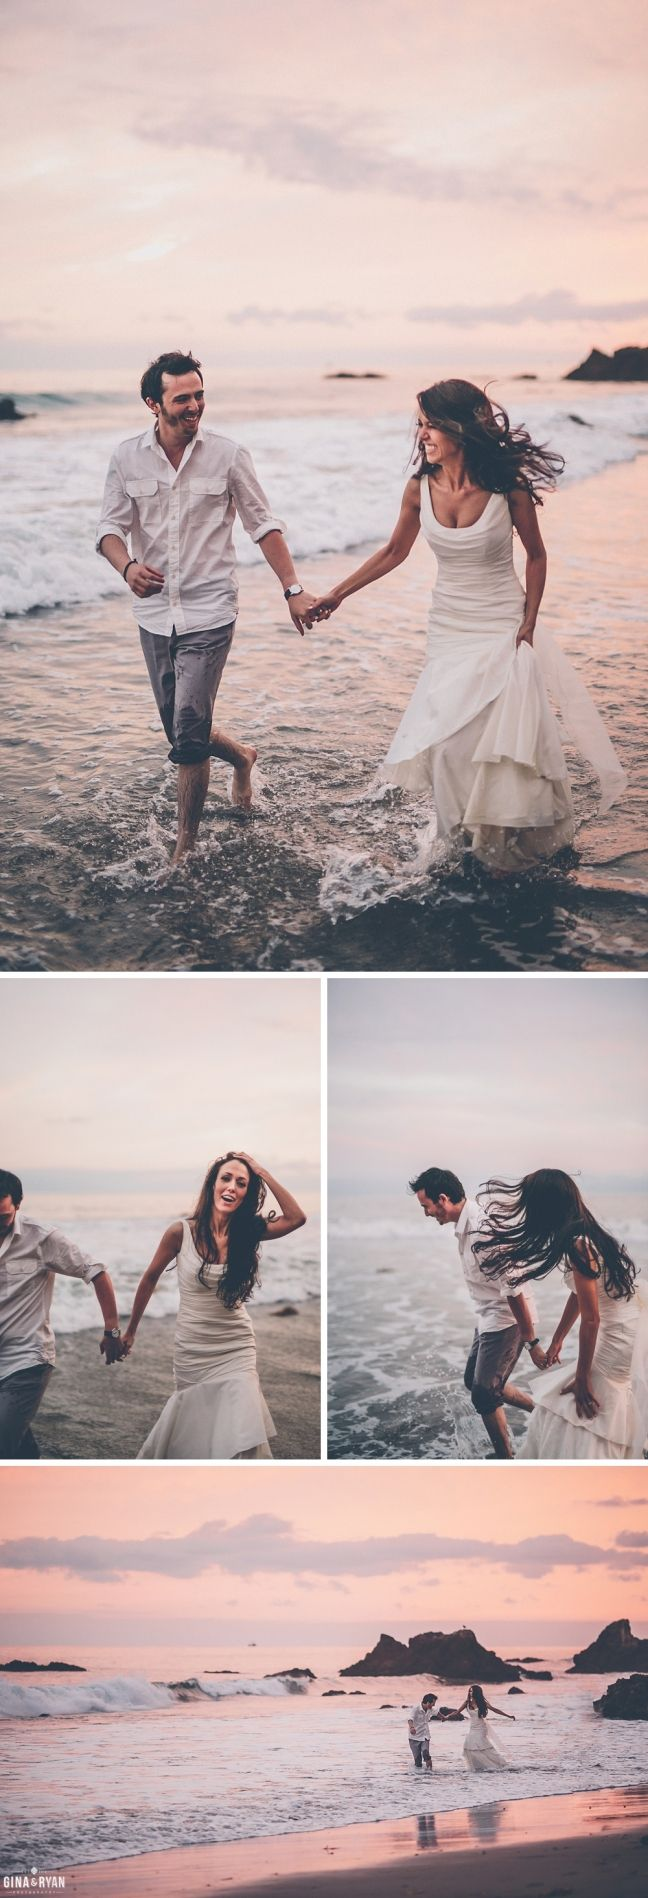 cool wedding shot ideas%0A Being a wedding venue  we can u    t get enough of sweet couples  This board is  an ode to adorable  fun and quirky couple images